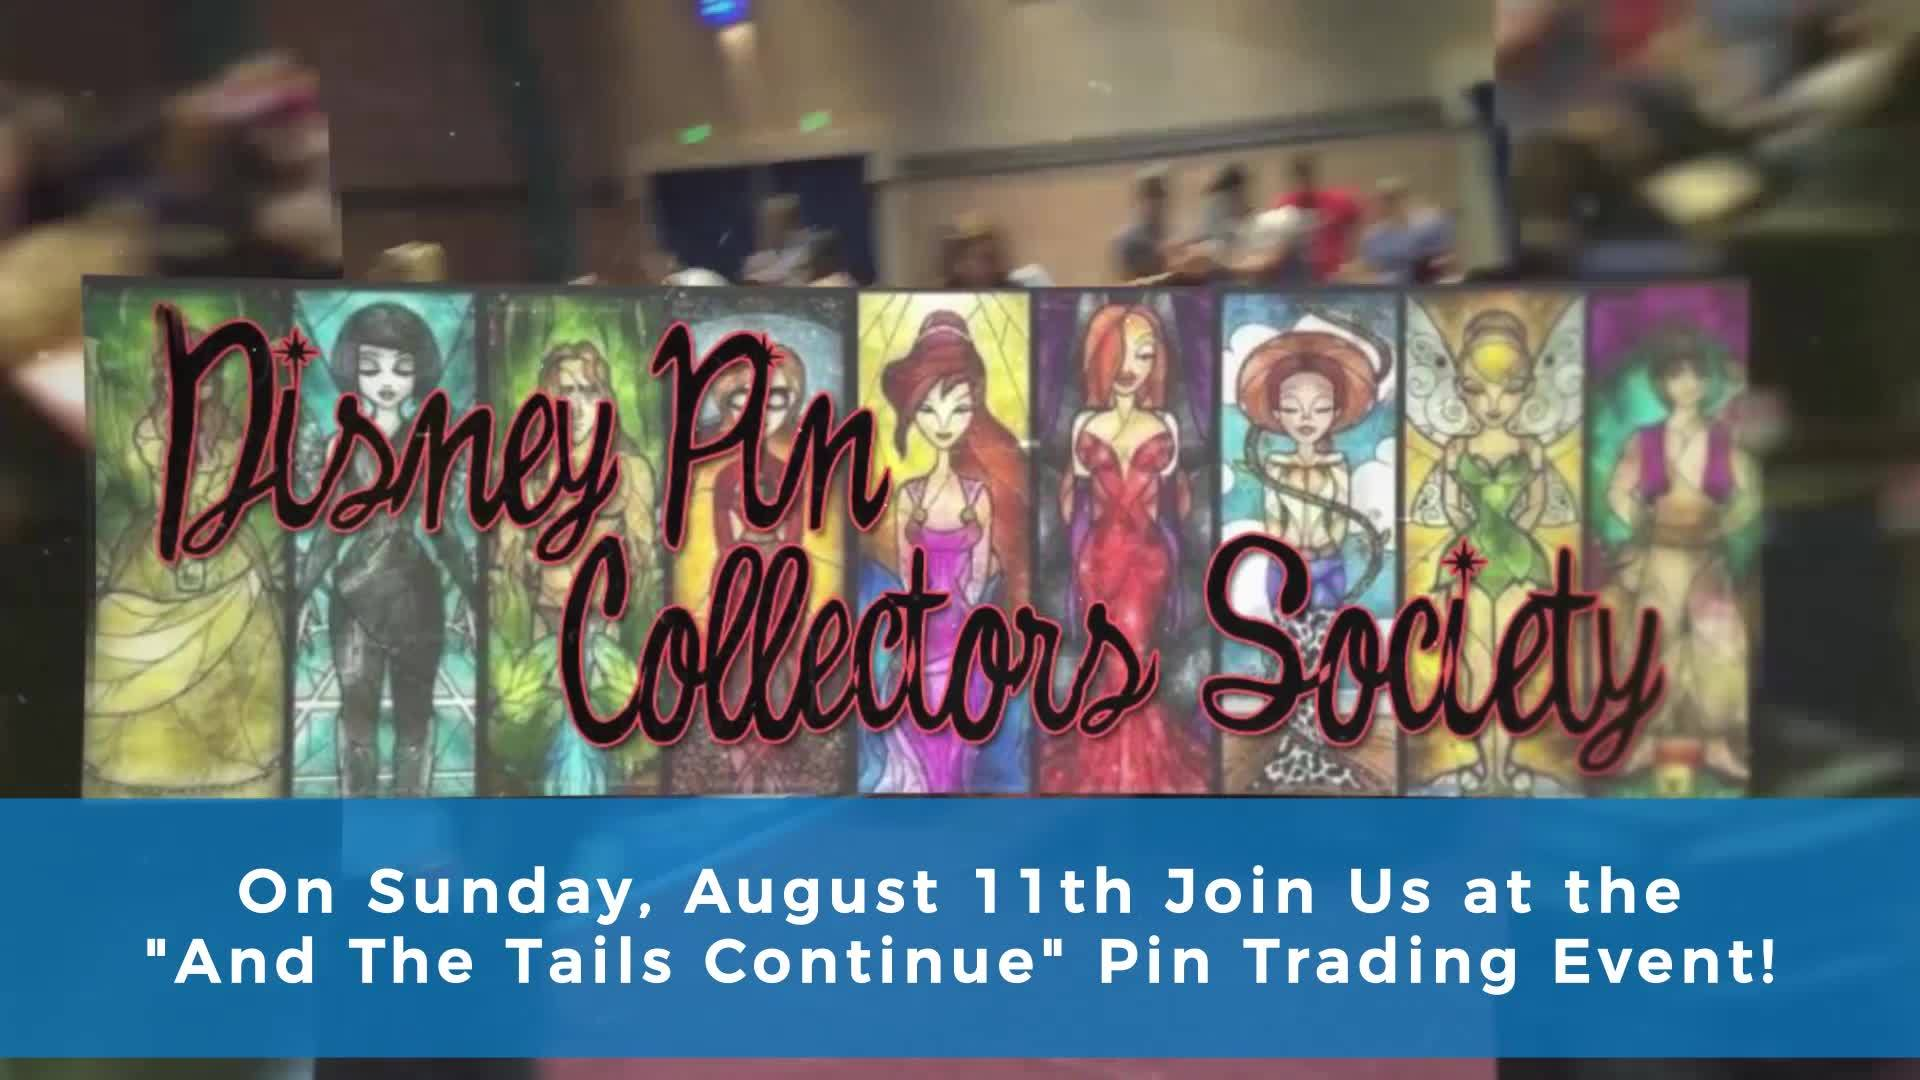 And The Tails Continue - Pin Trading Event